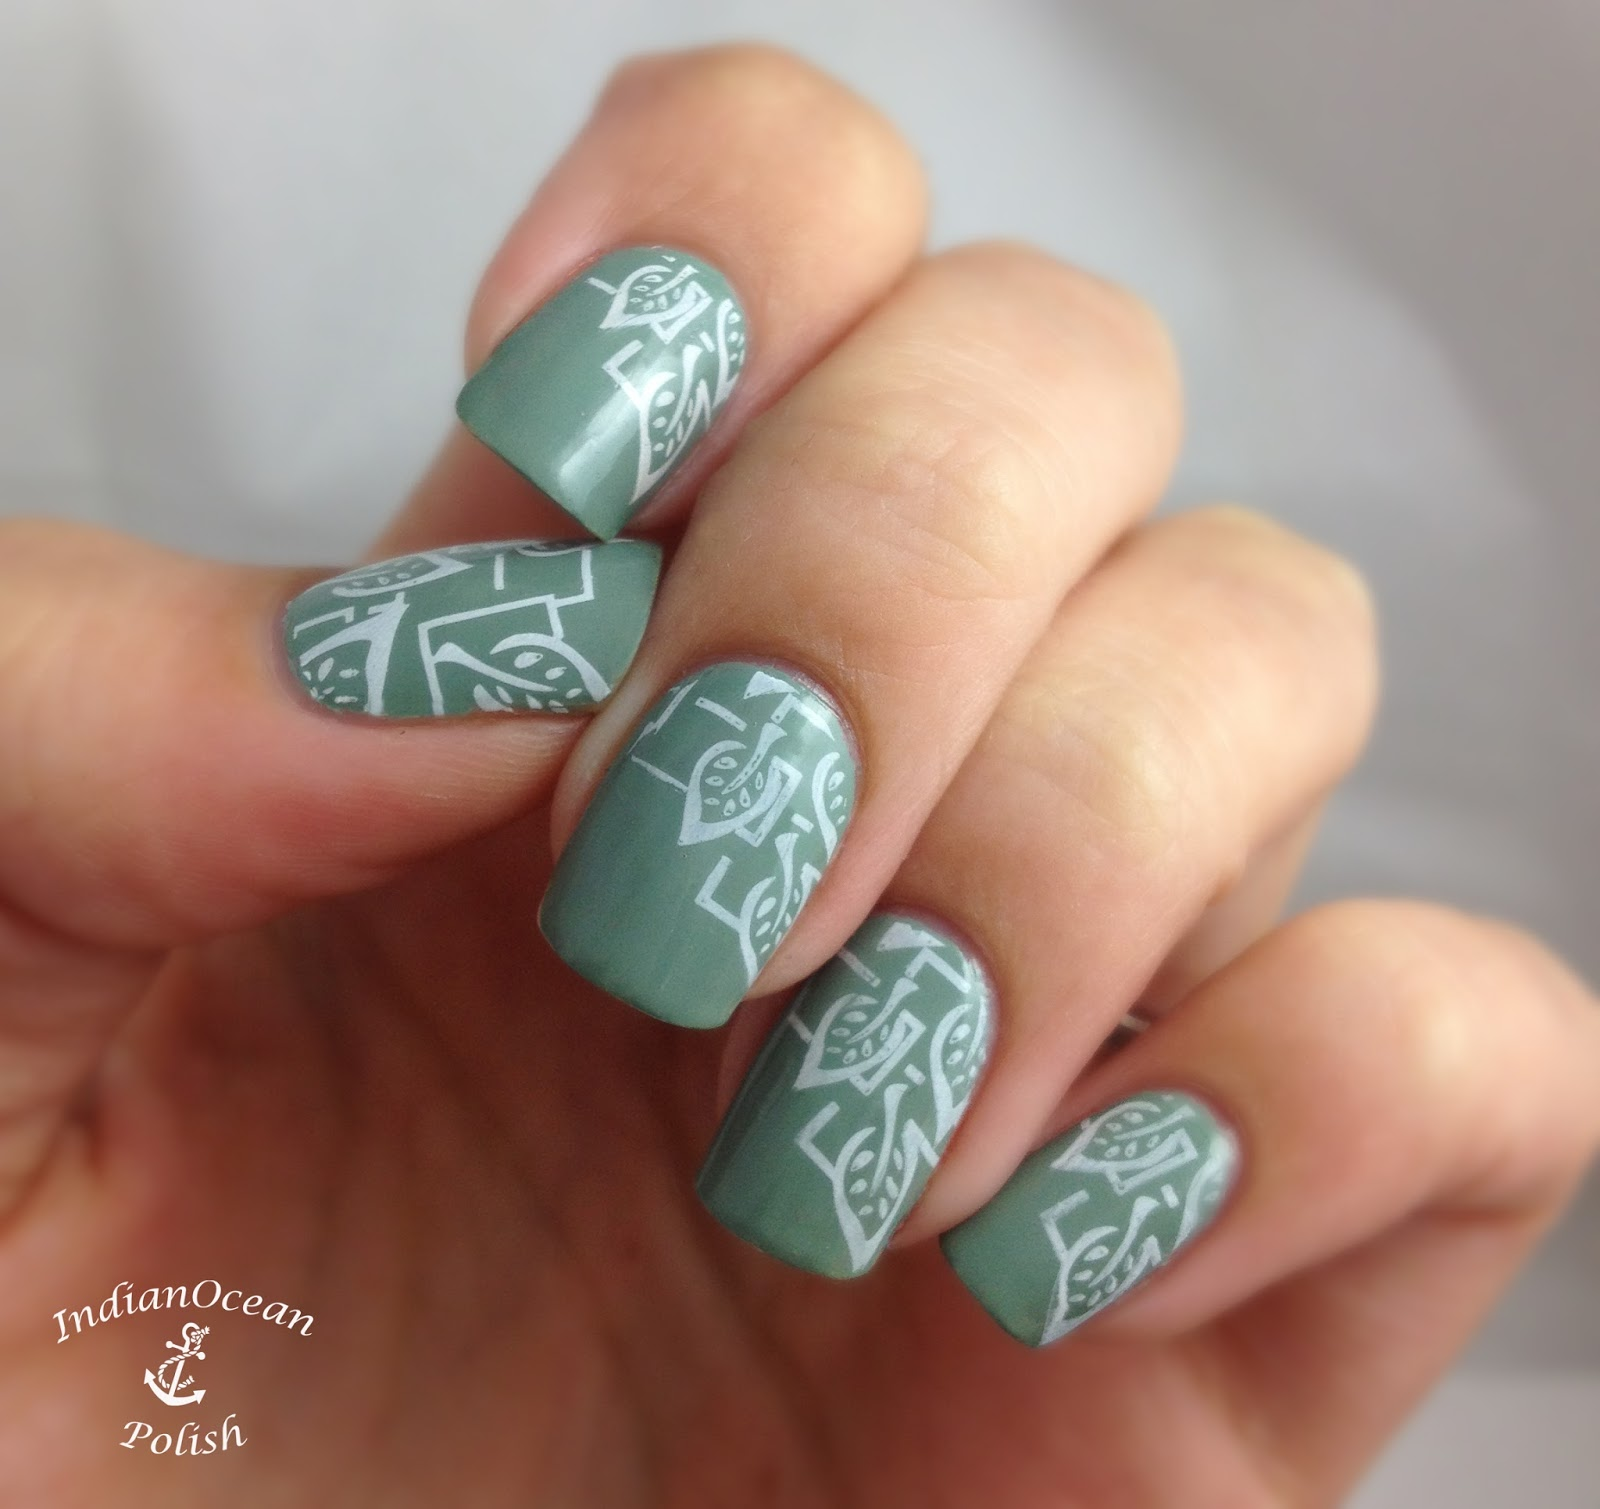 Indian Ocean Polish: Leafy stamping design from XL-O